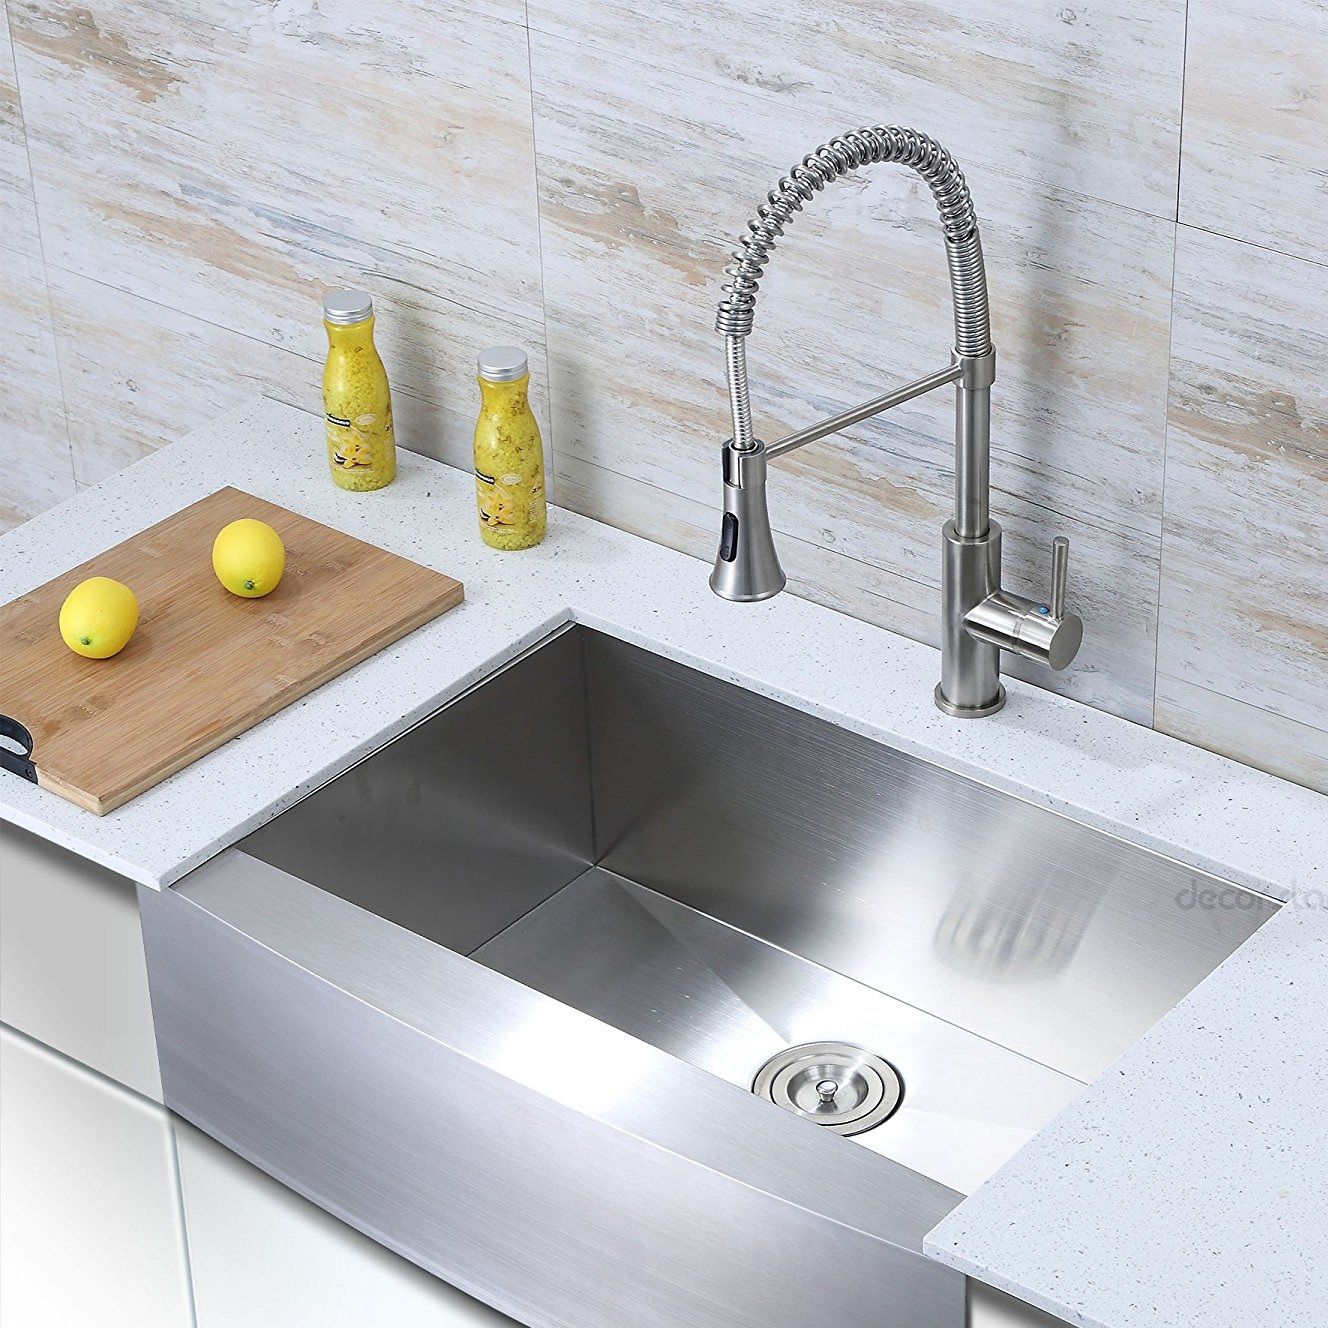 Discover The Best Farmhouse Kitchen Sinks For Your Home. We Love Coastal Farmhouse  Sinks Because They Can Make Your Farm Kitchen Look Incredible.